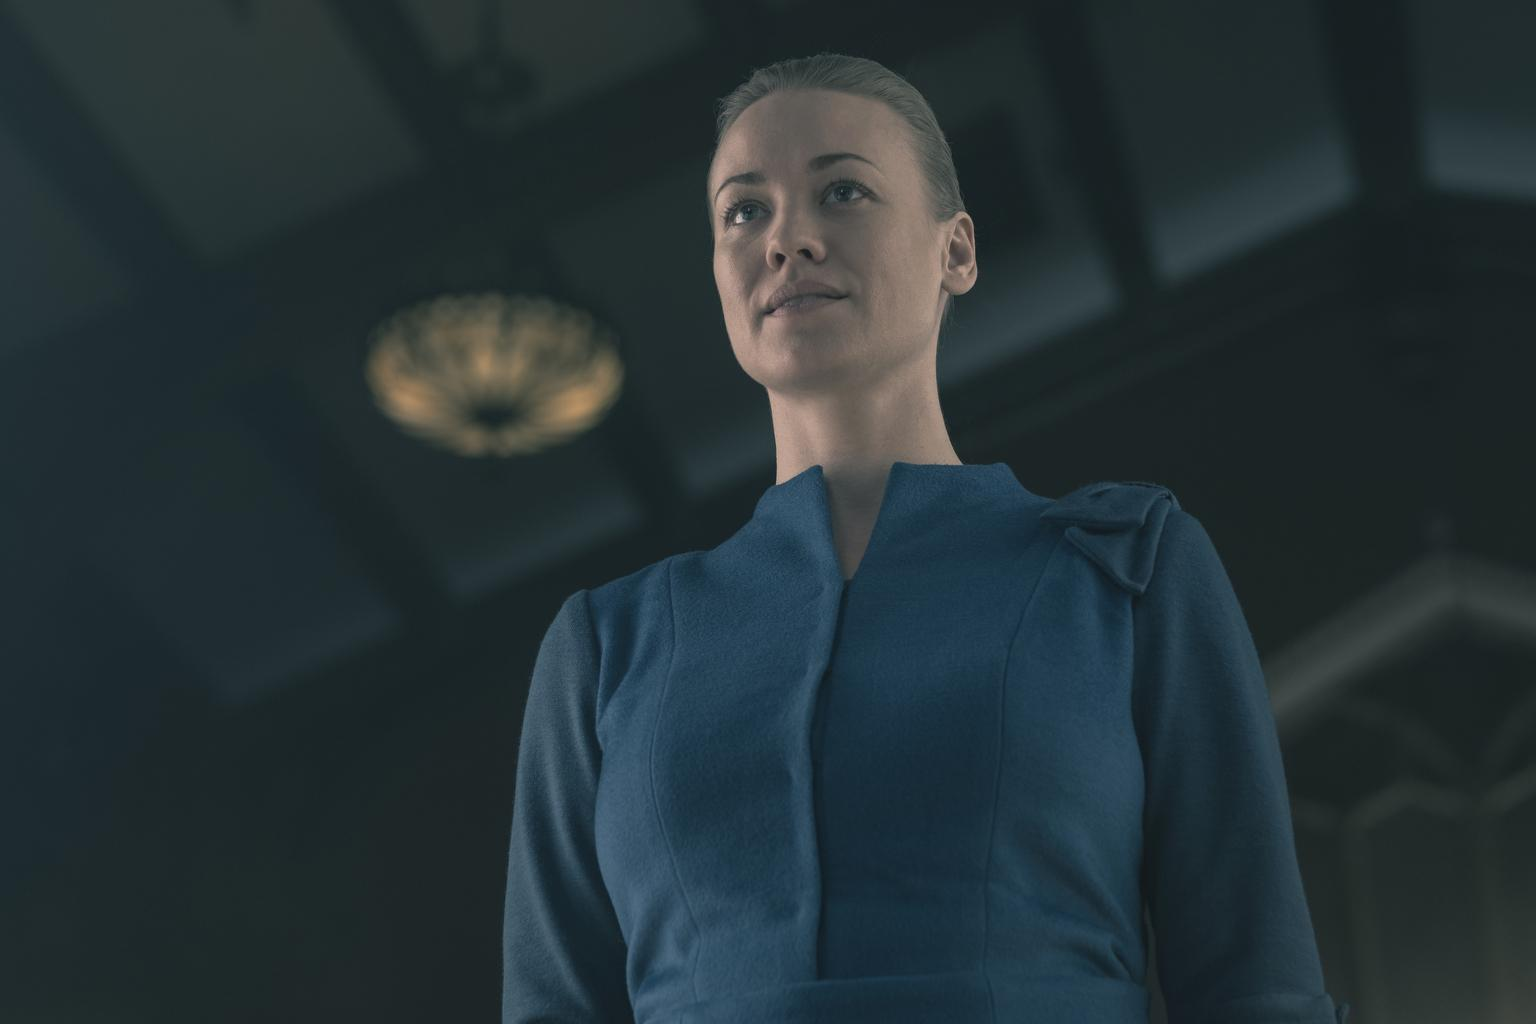 handmaid's tale season 3 - photo #9